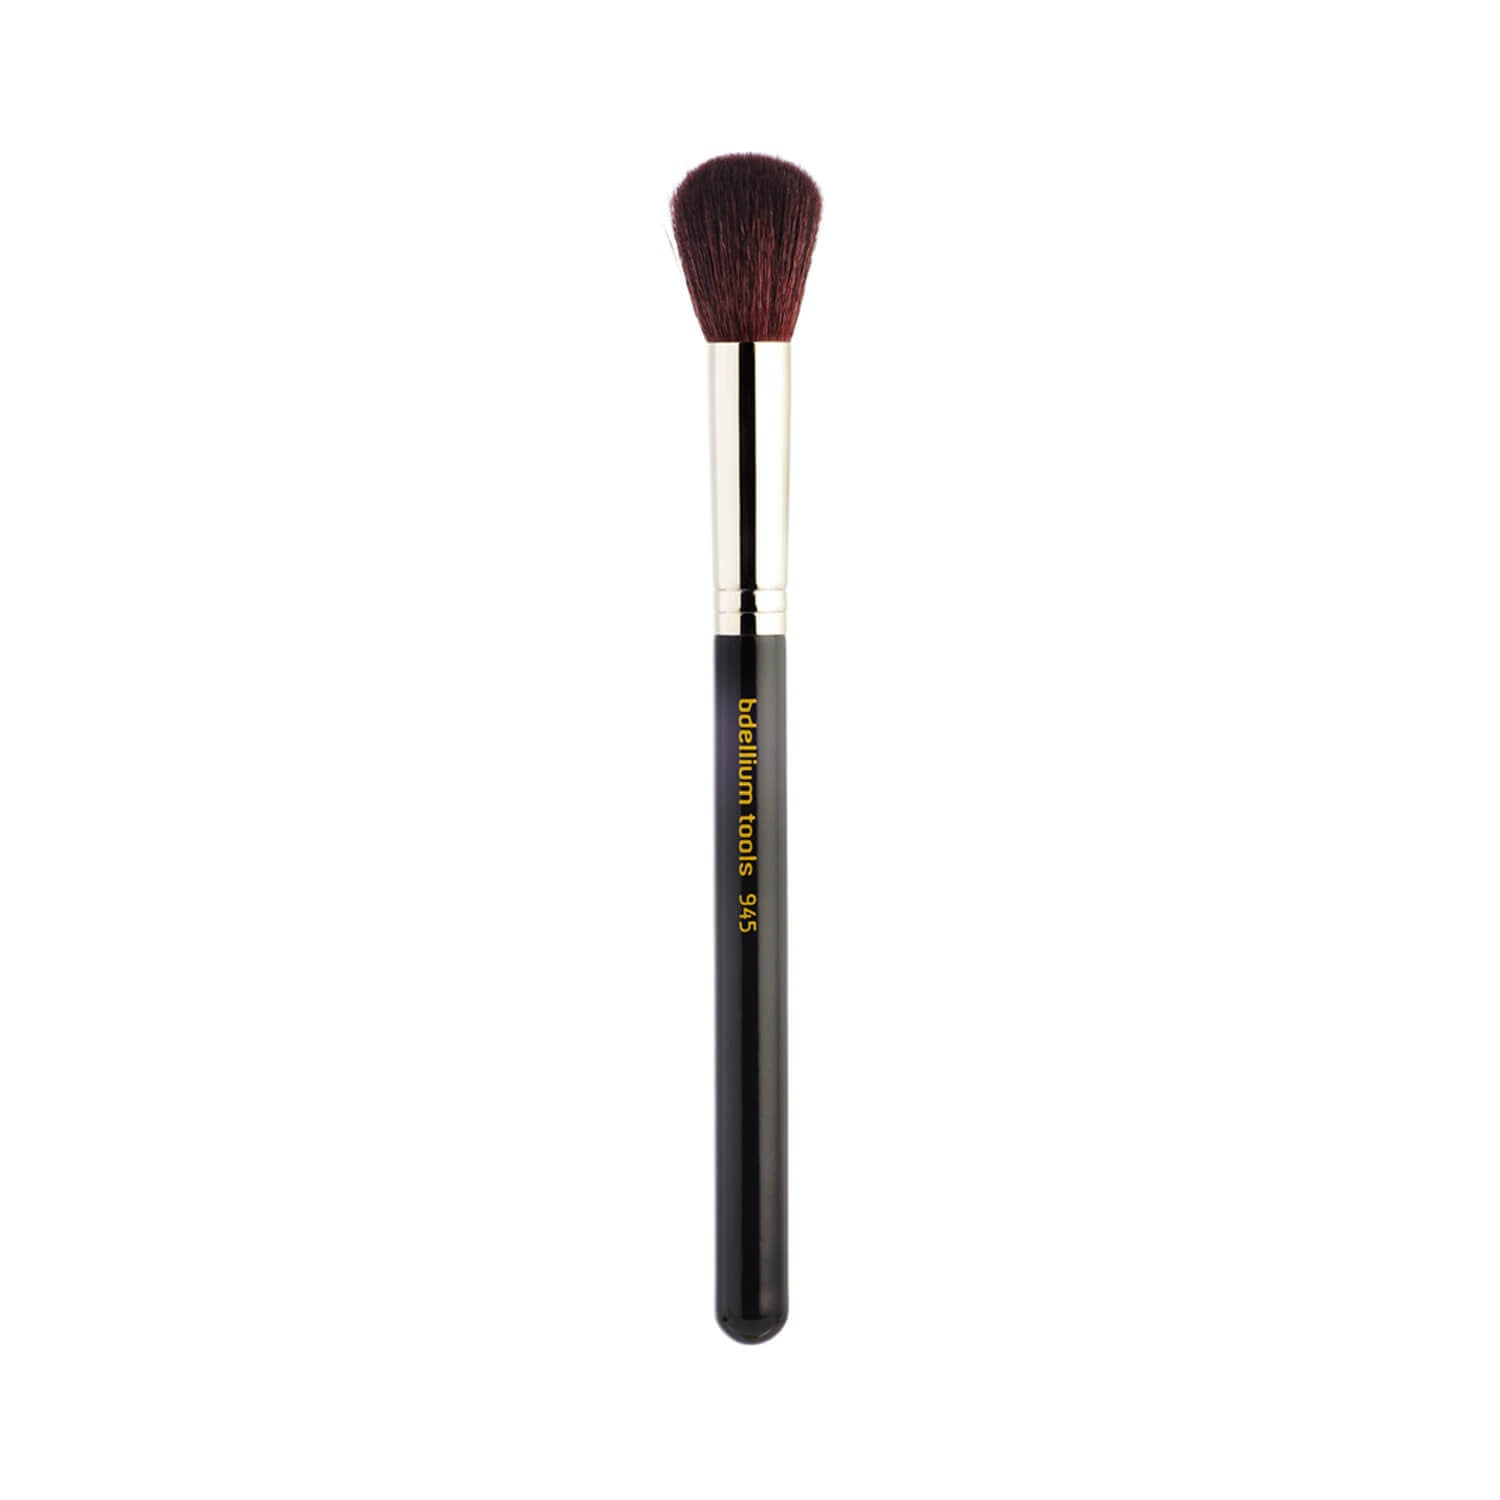 BDellium Tools Maestro Line 945 Contour Brush Black